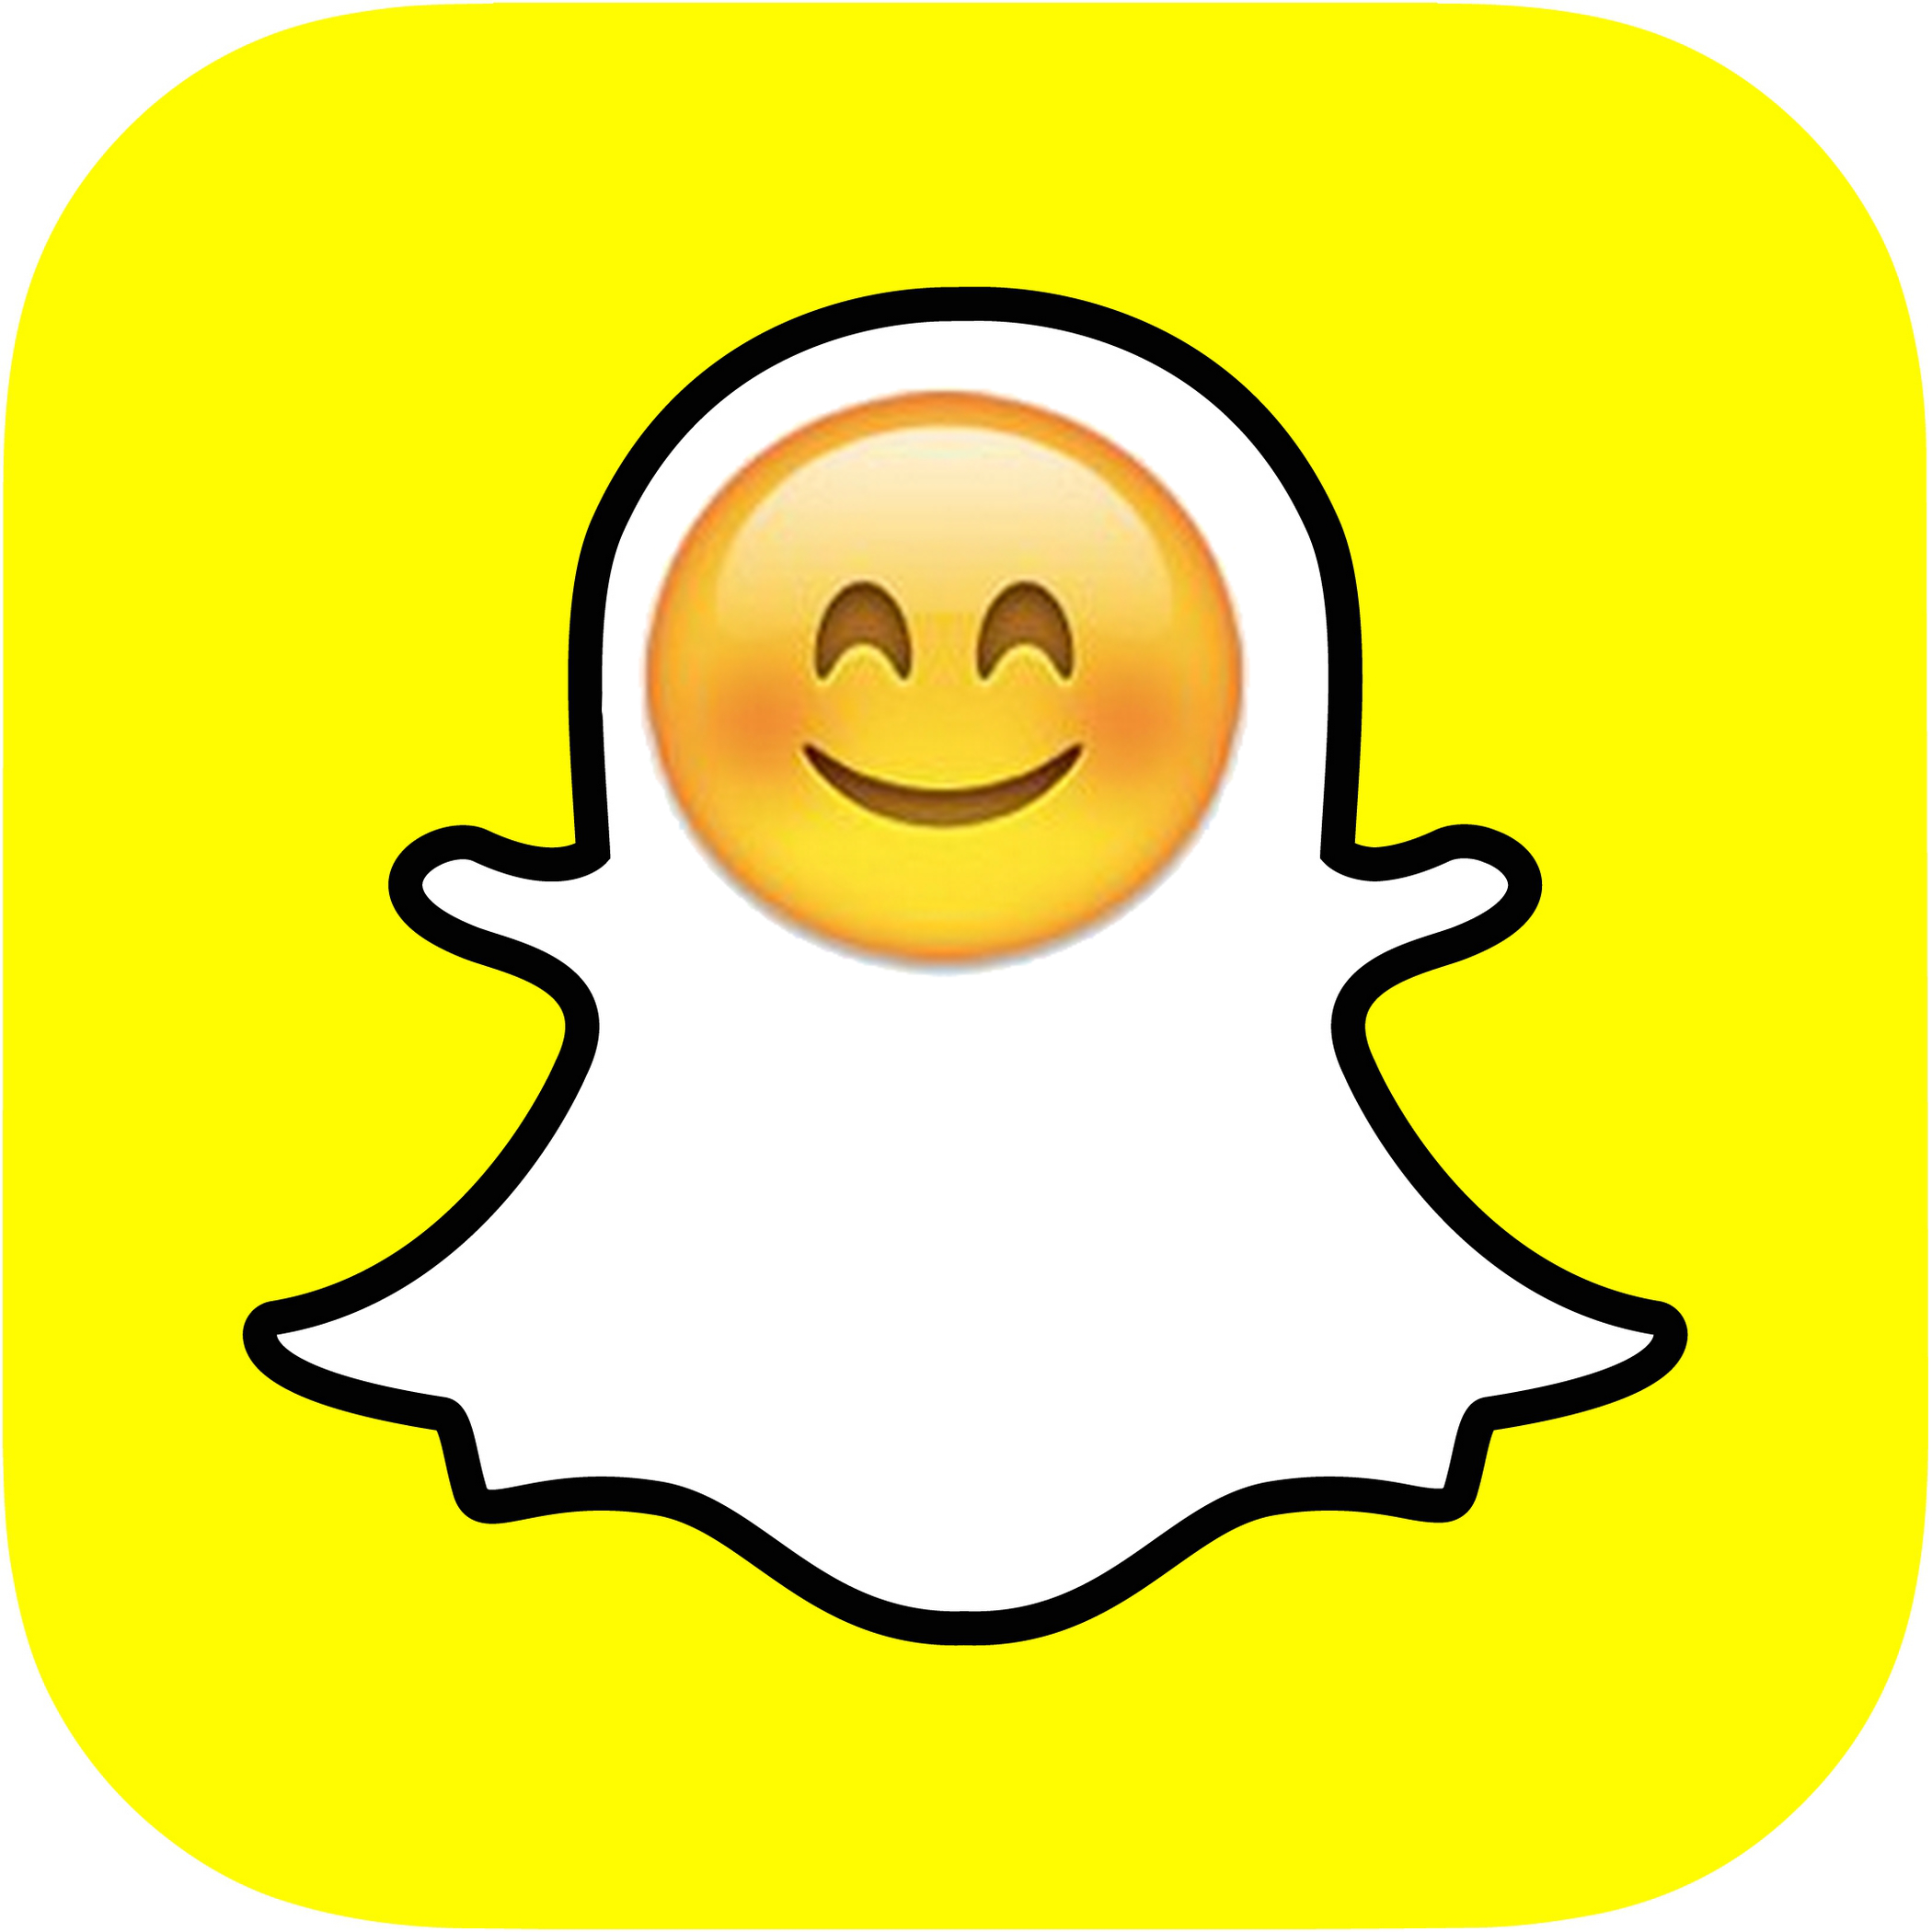 Complete list of snapchat emoji meanings and trophies what star complete list of snapchat emoji meanings and trophies what star beside names really means and how to get all trophy case emoji player buycottarizona Image collections